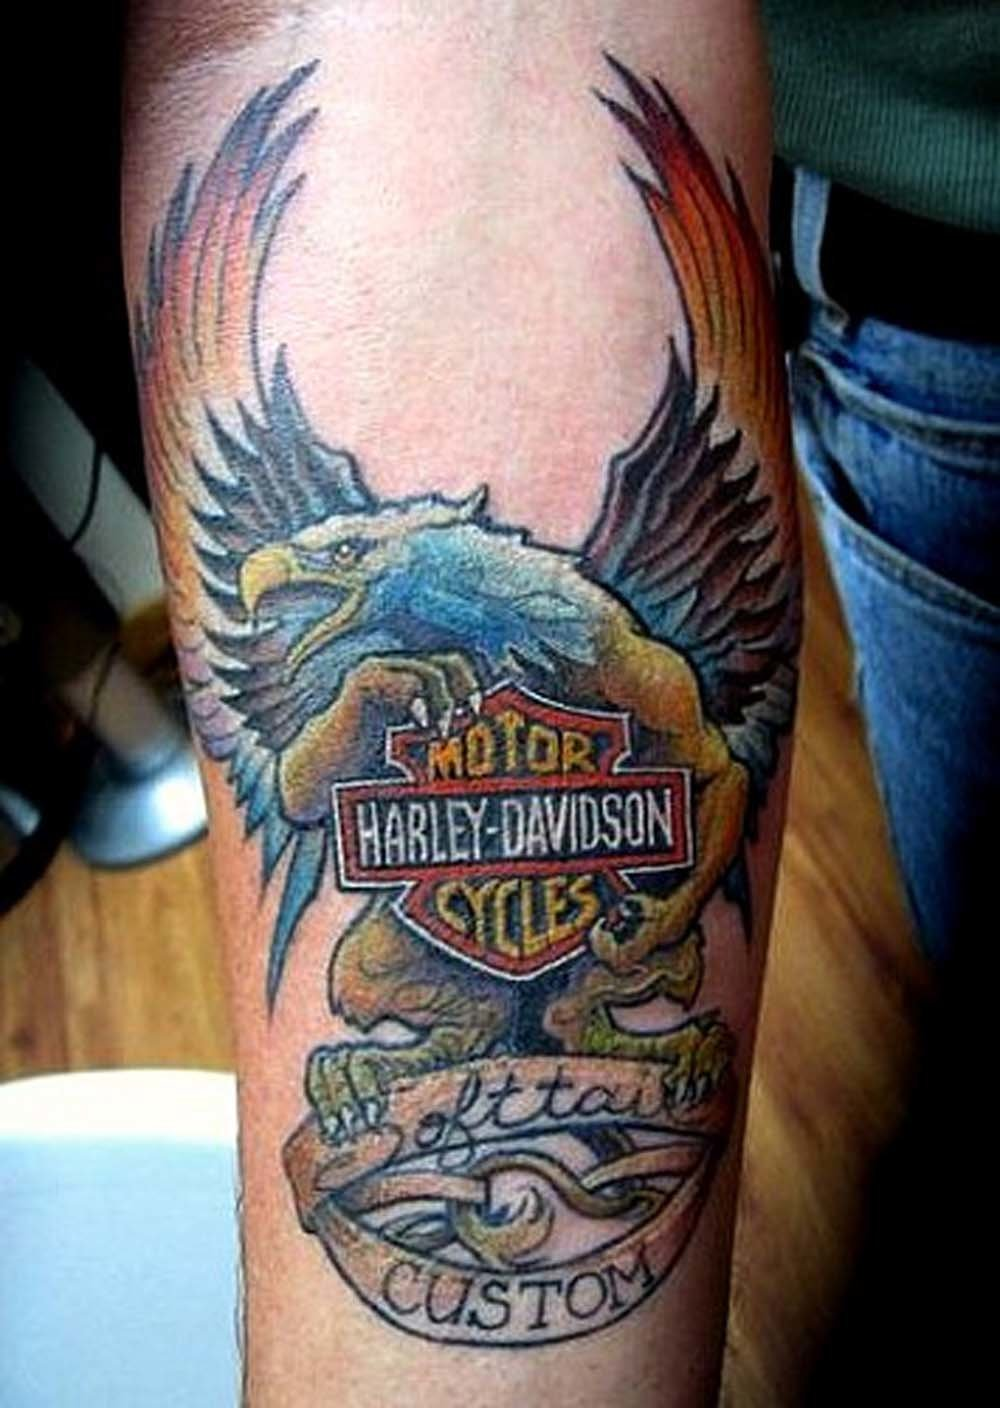 you can see harley eagle tattoo photo 1 tattoos ideas in an rh yandex com harley davidson screamin eagle tattoos harley davidson american eagle tattoos